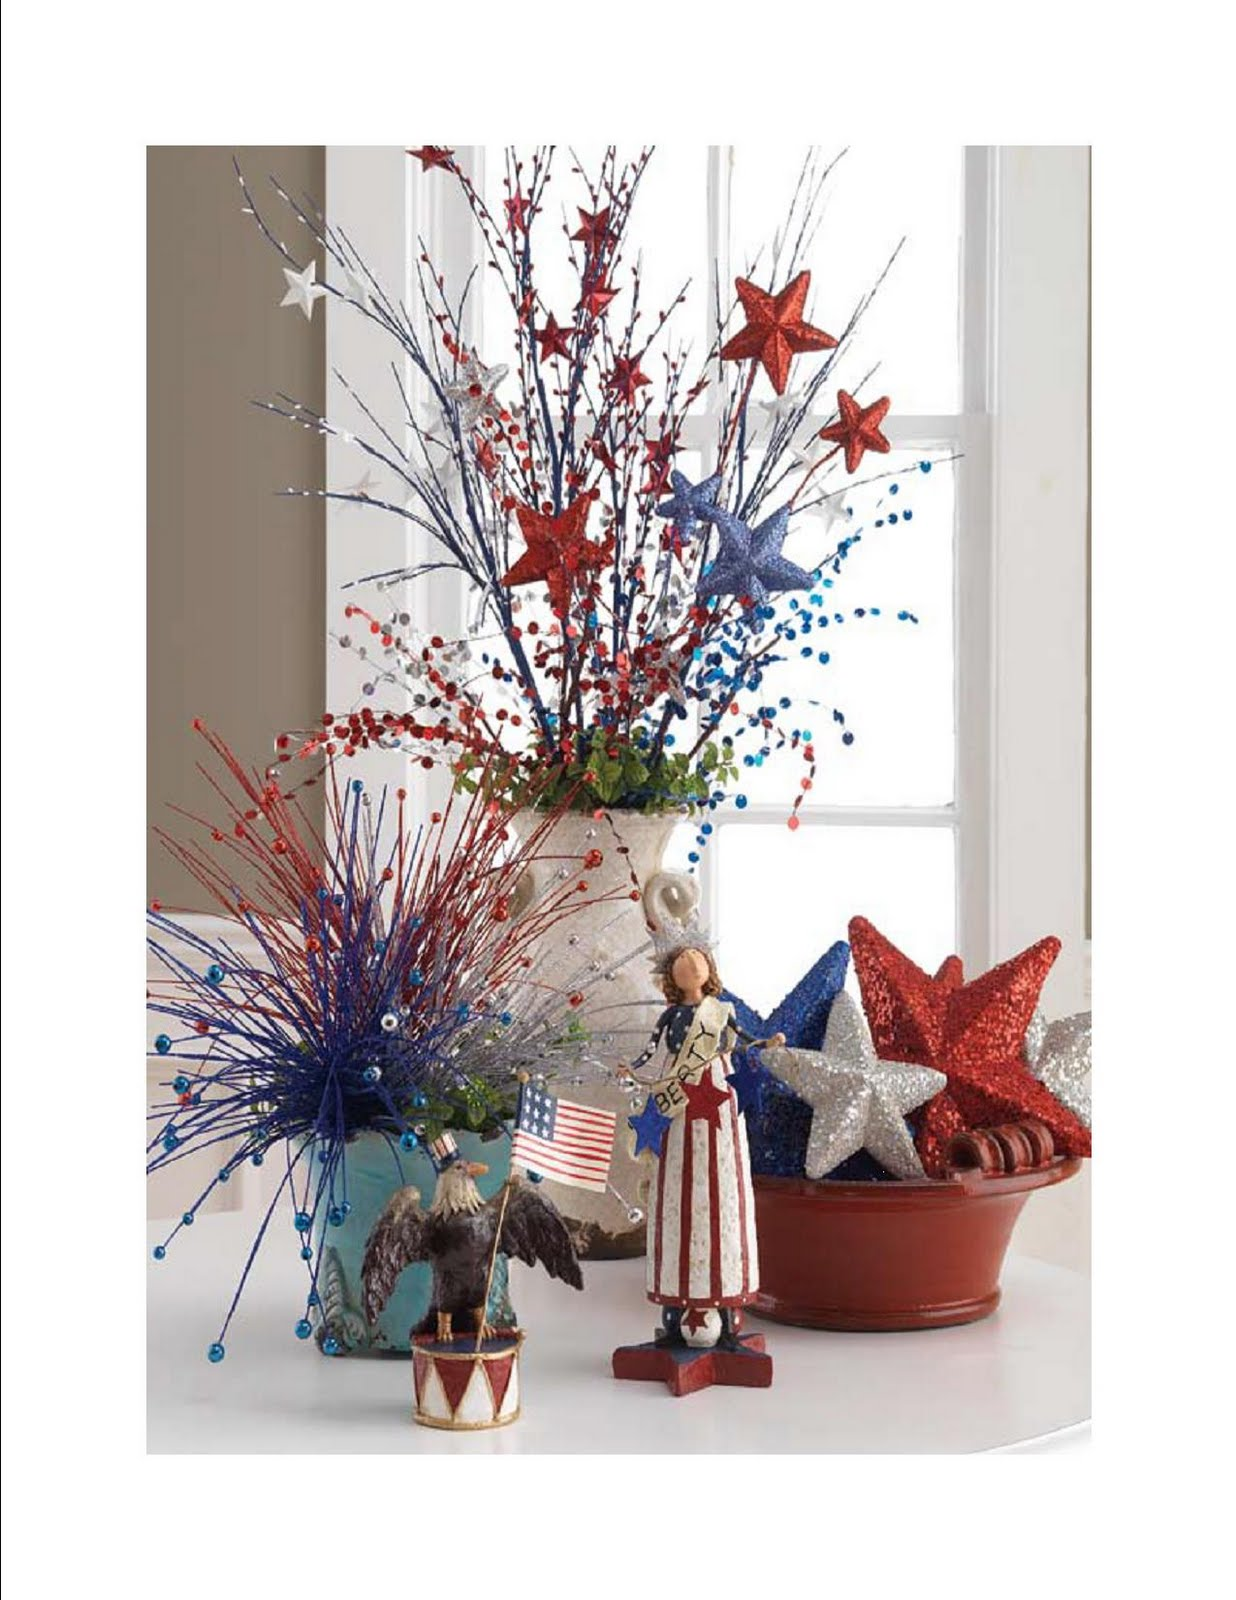 Shelley B Decor And More: July 4th Decorations